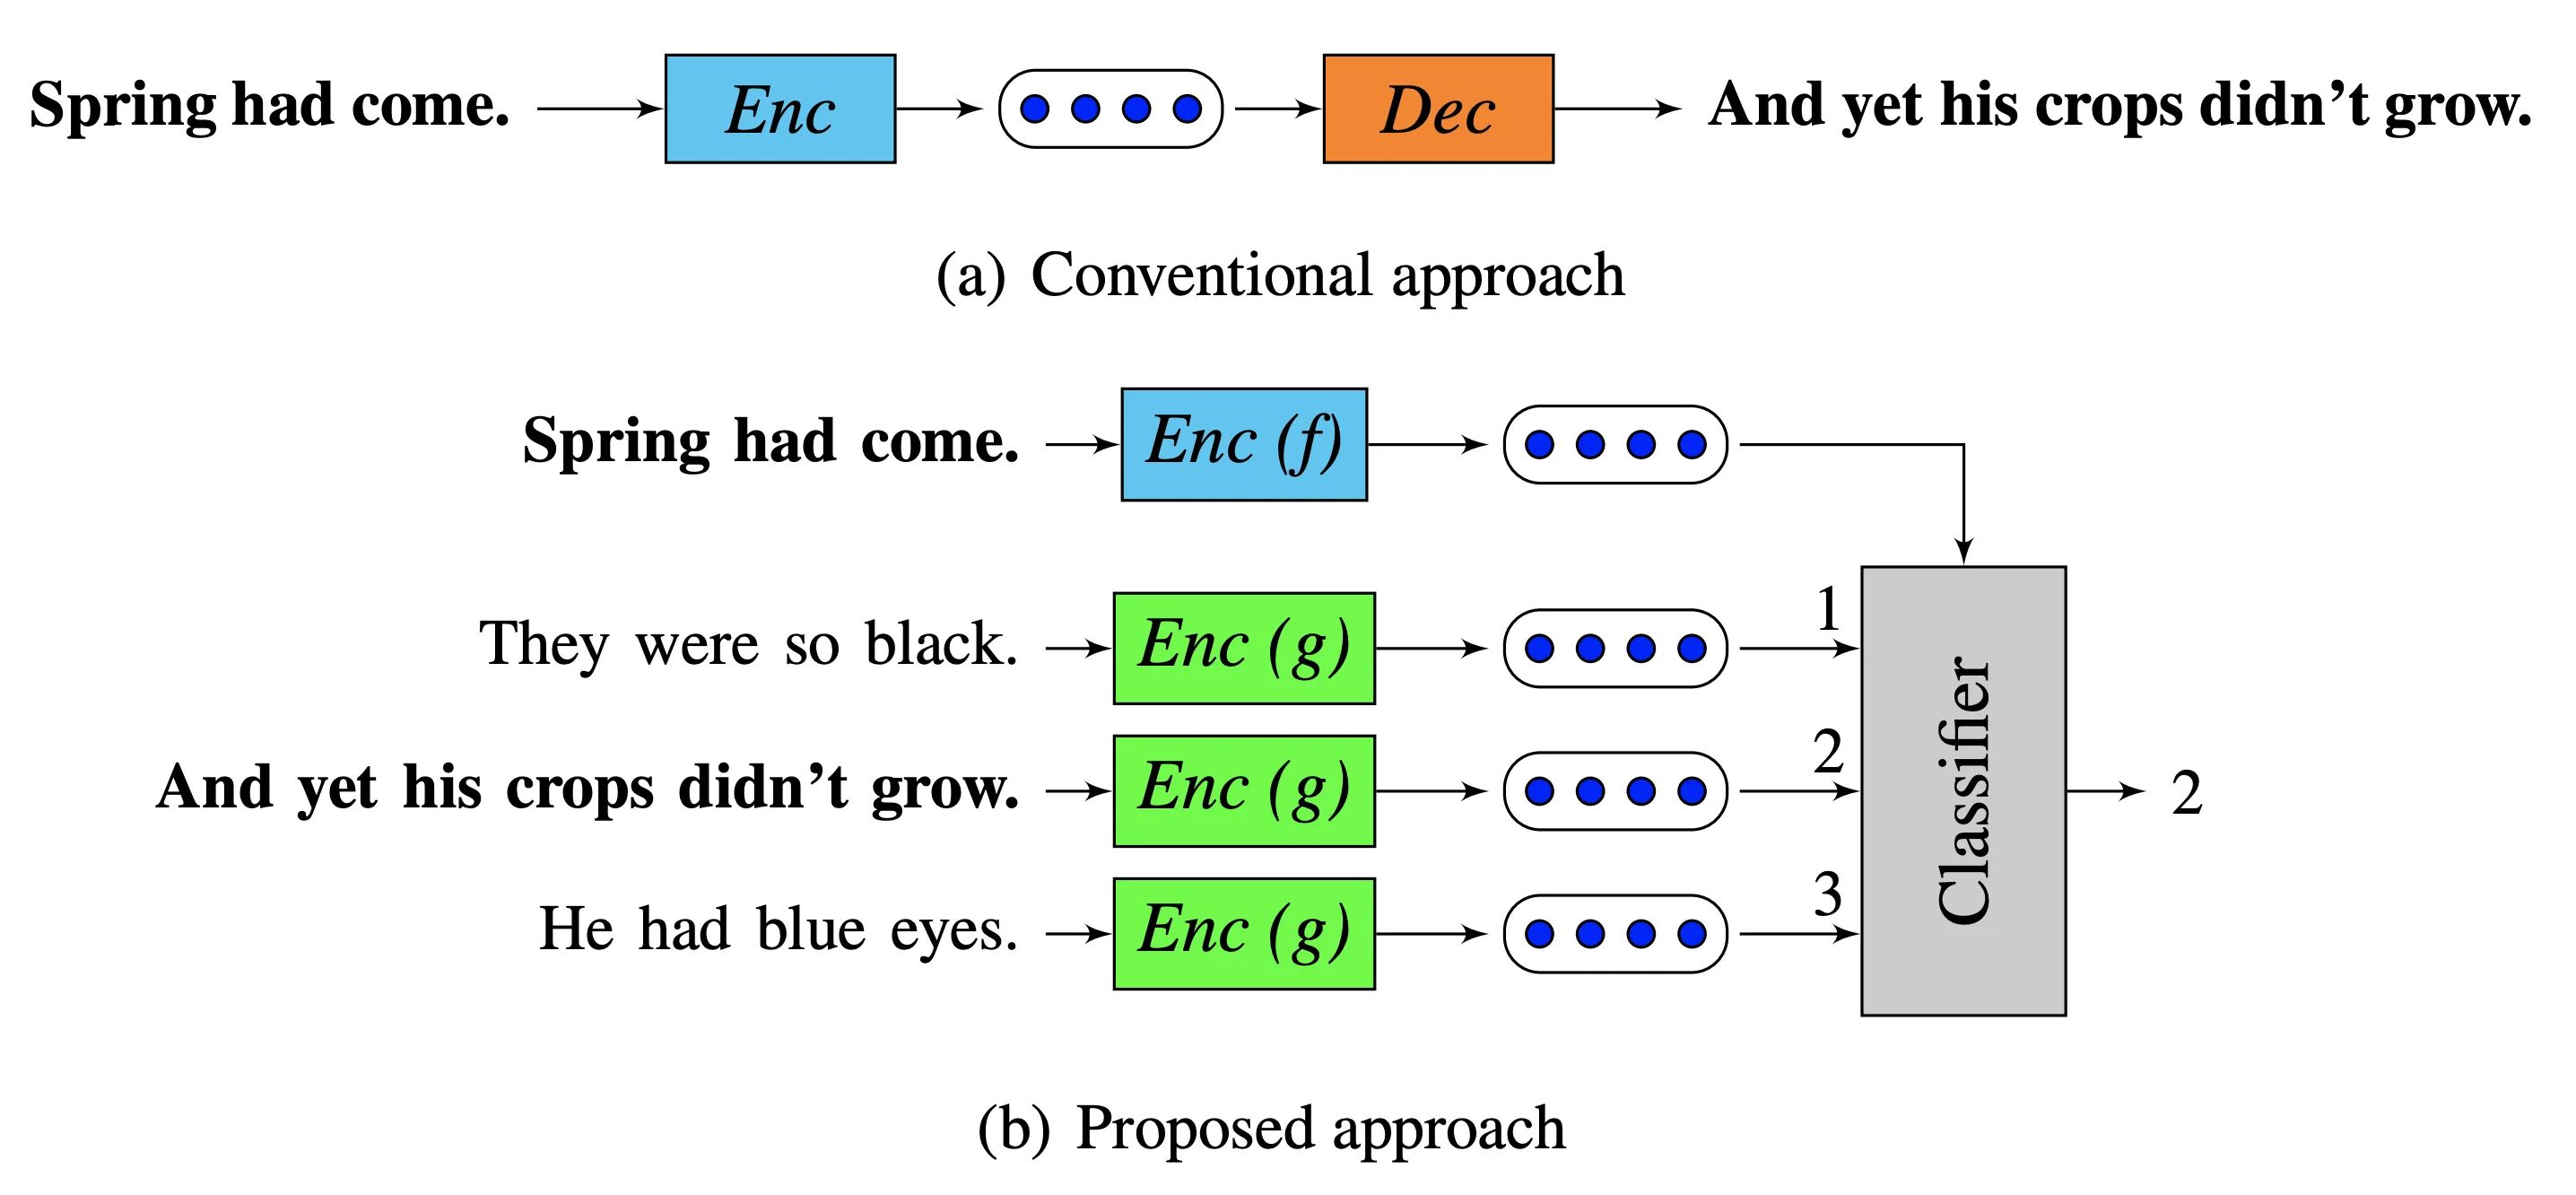 Replaces the decoder from prior methods with a classifier which chooses the target sentence from a set of candidate sentences [taken from [paper](https://arxiv.org/pdf/1803.02893.pdf)]